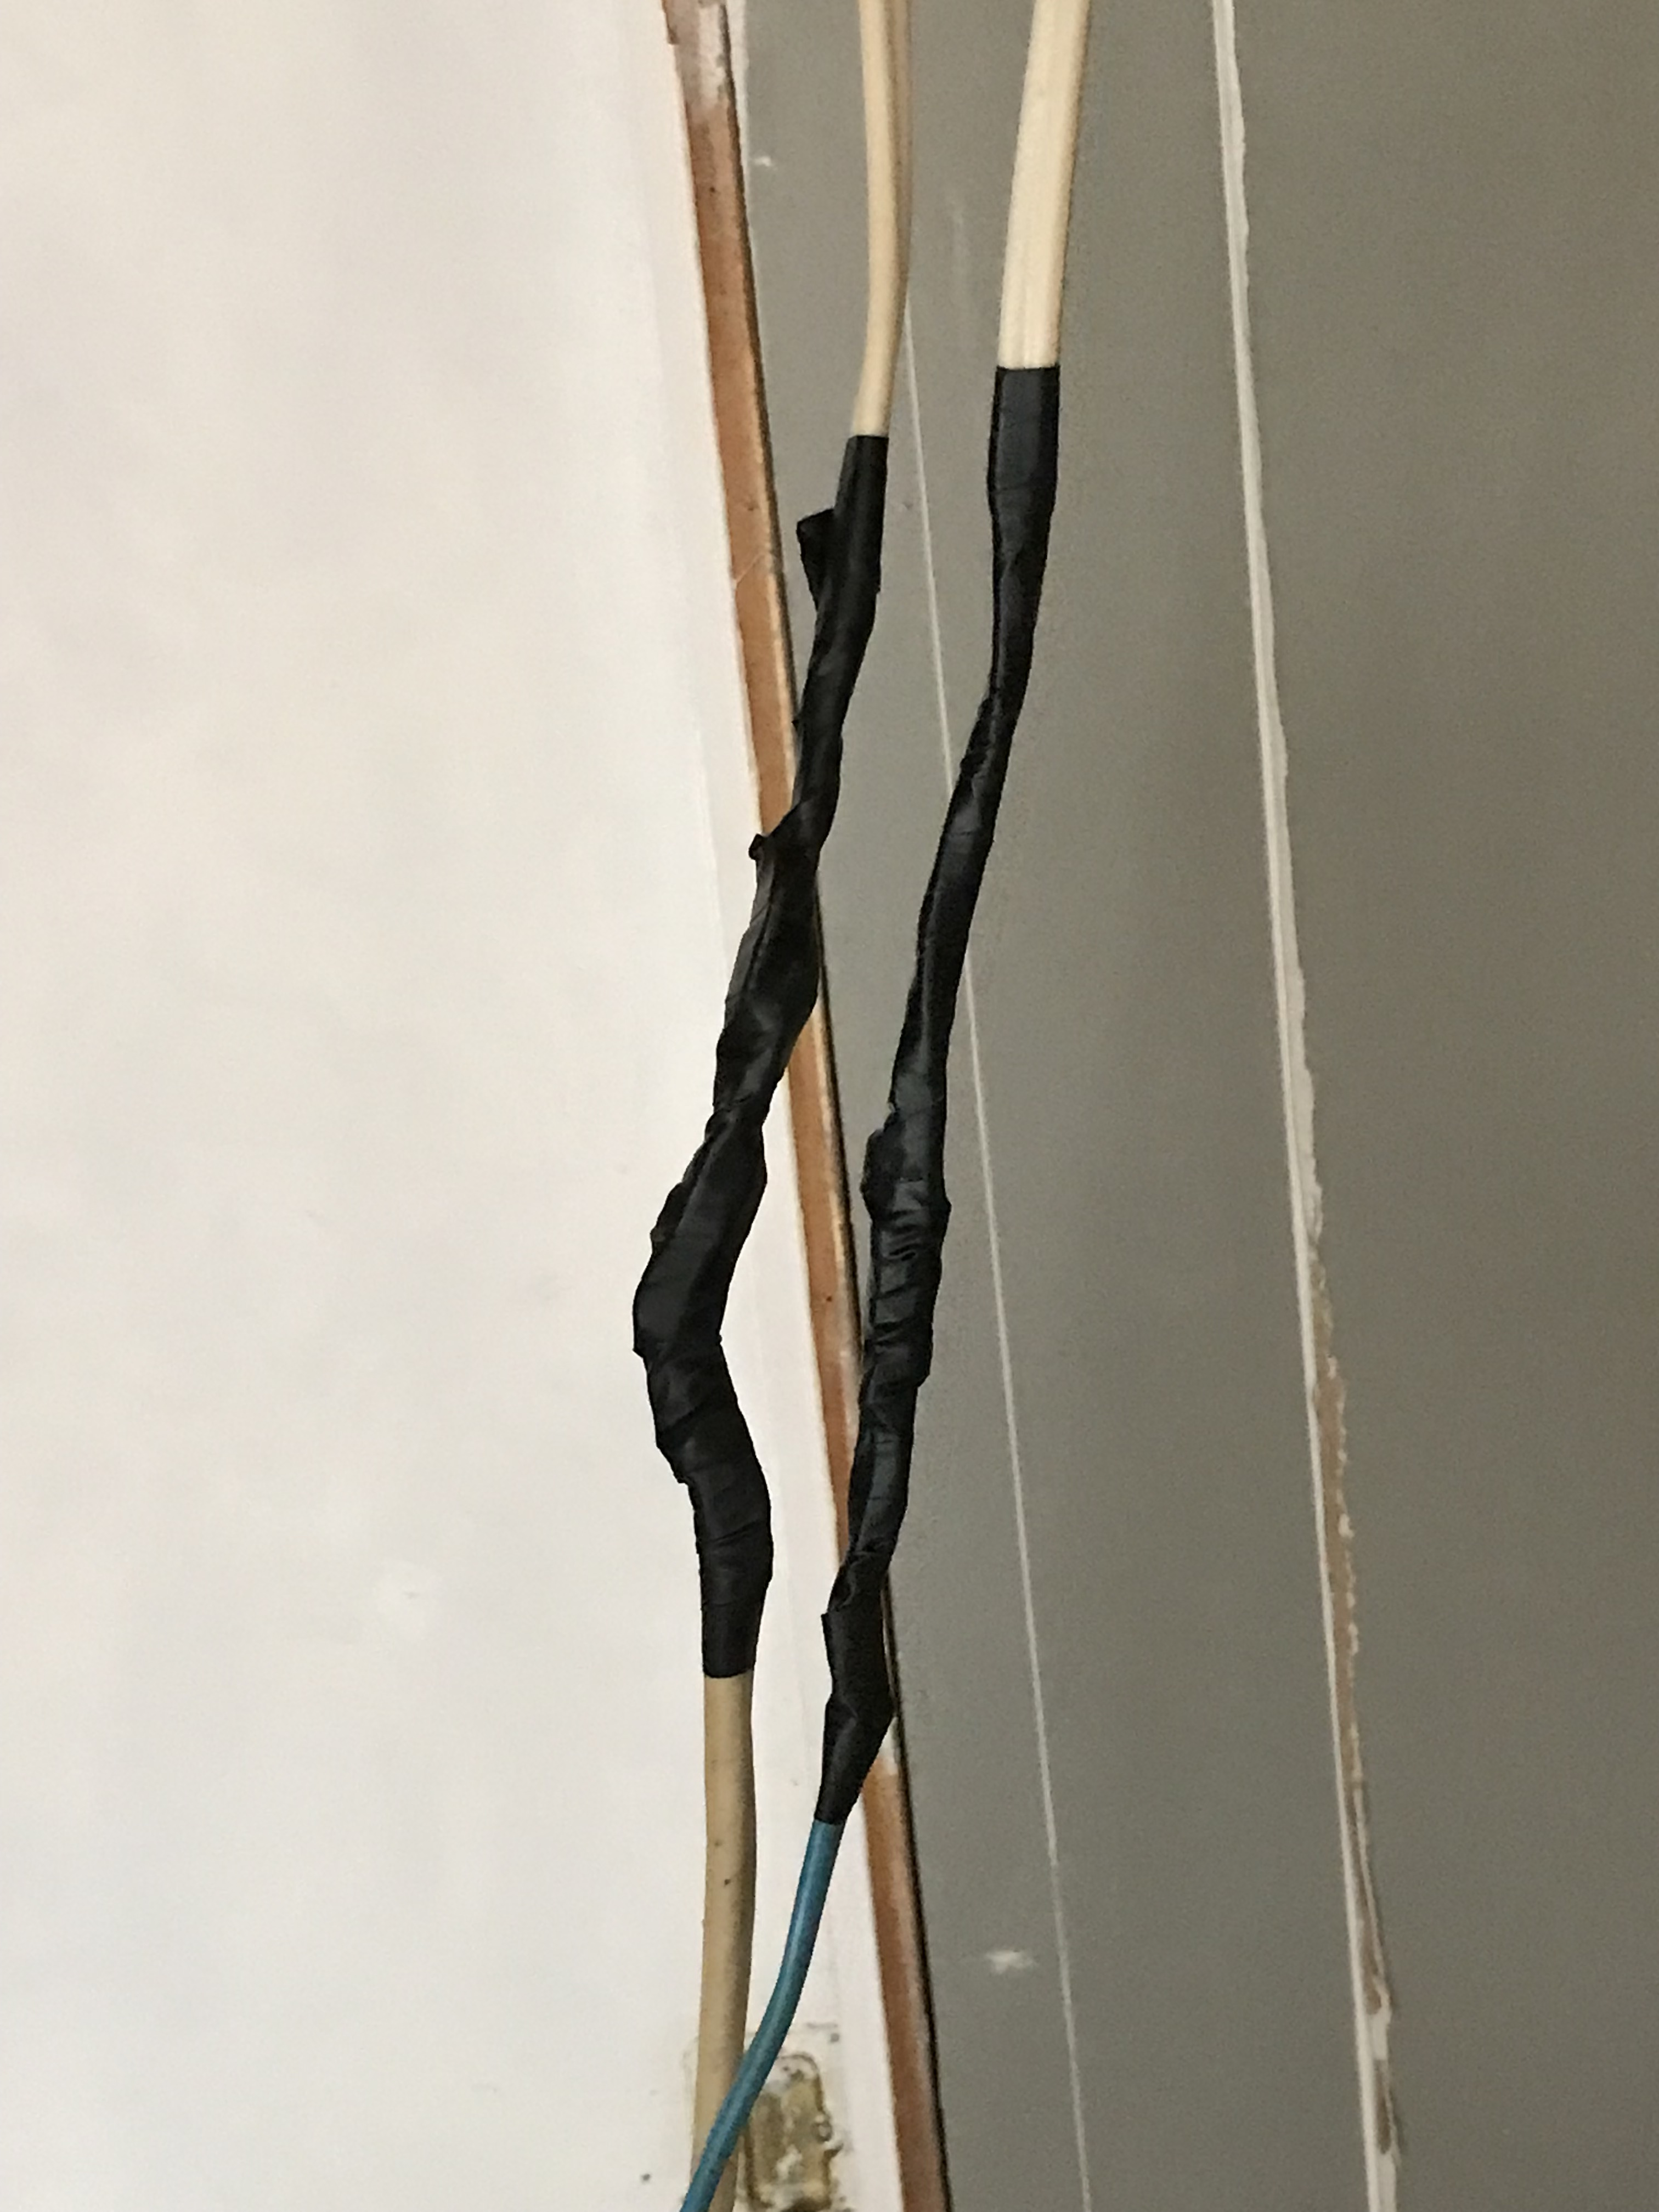 picture of illegal splicing - replacing it can help with preventing electrical fires